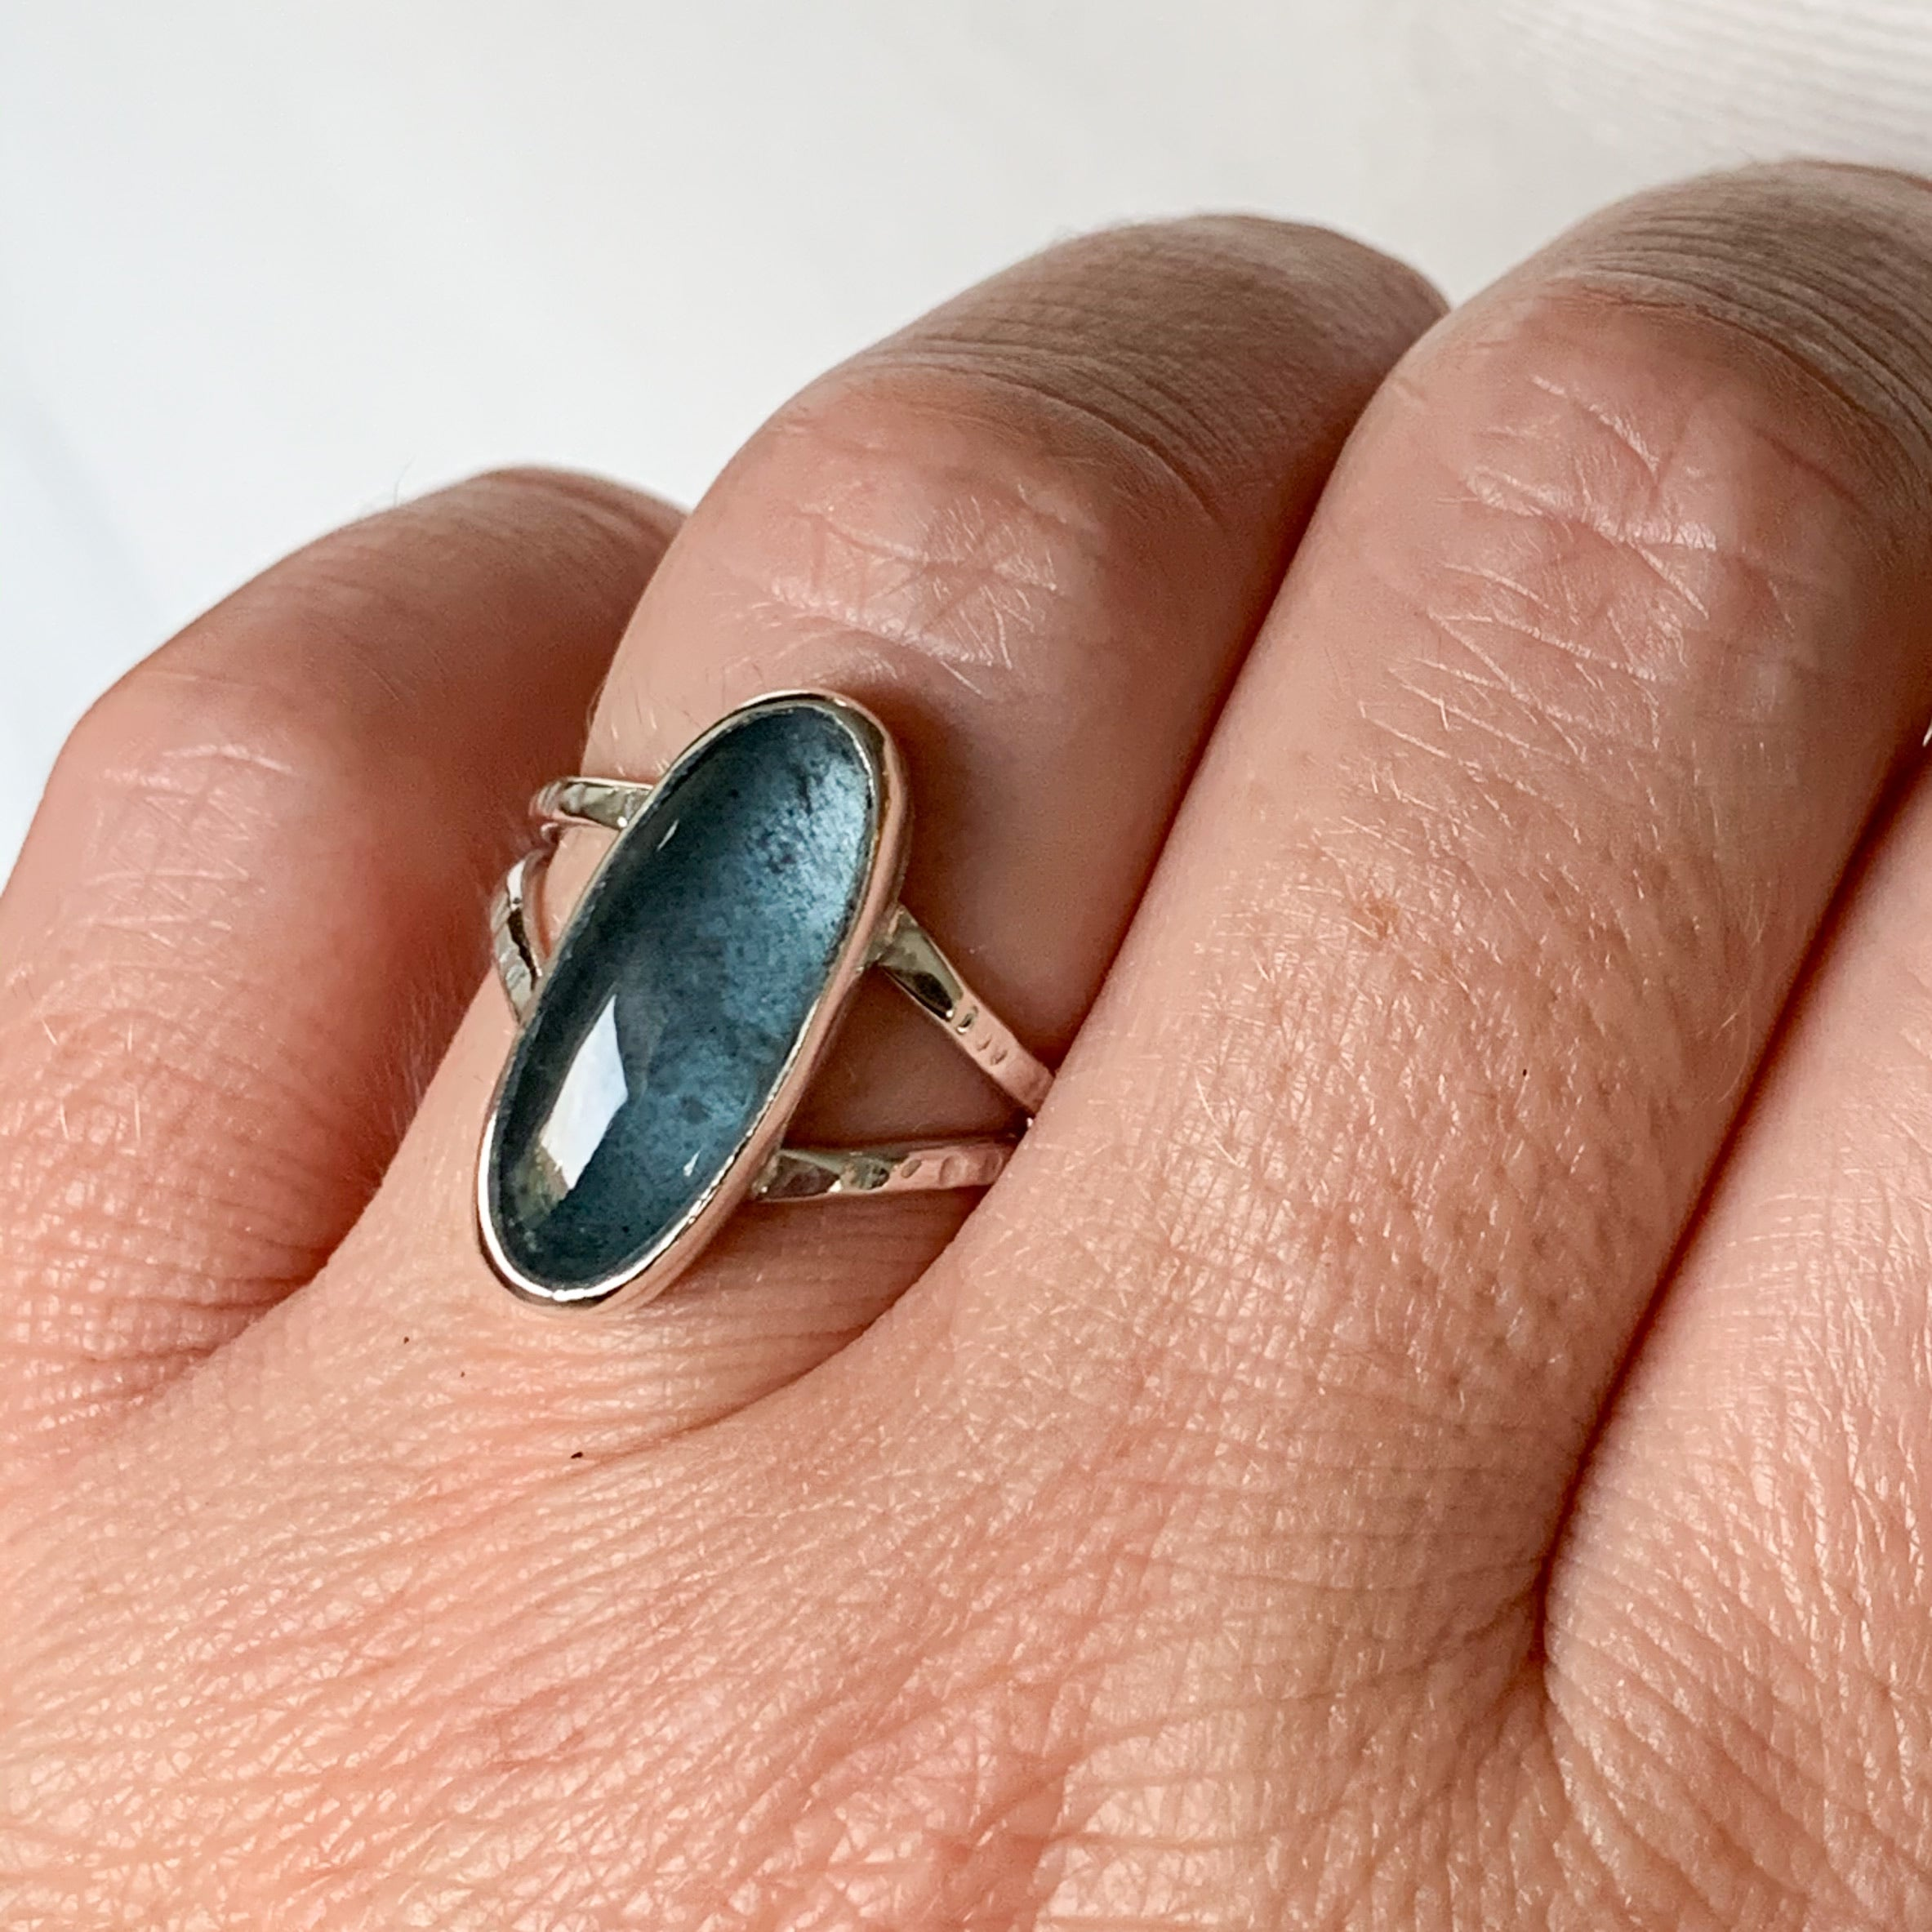 Moss Aquamarine ring  - sterling silver - size 6.75